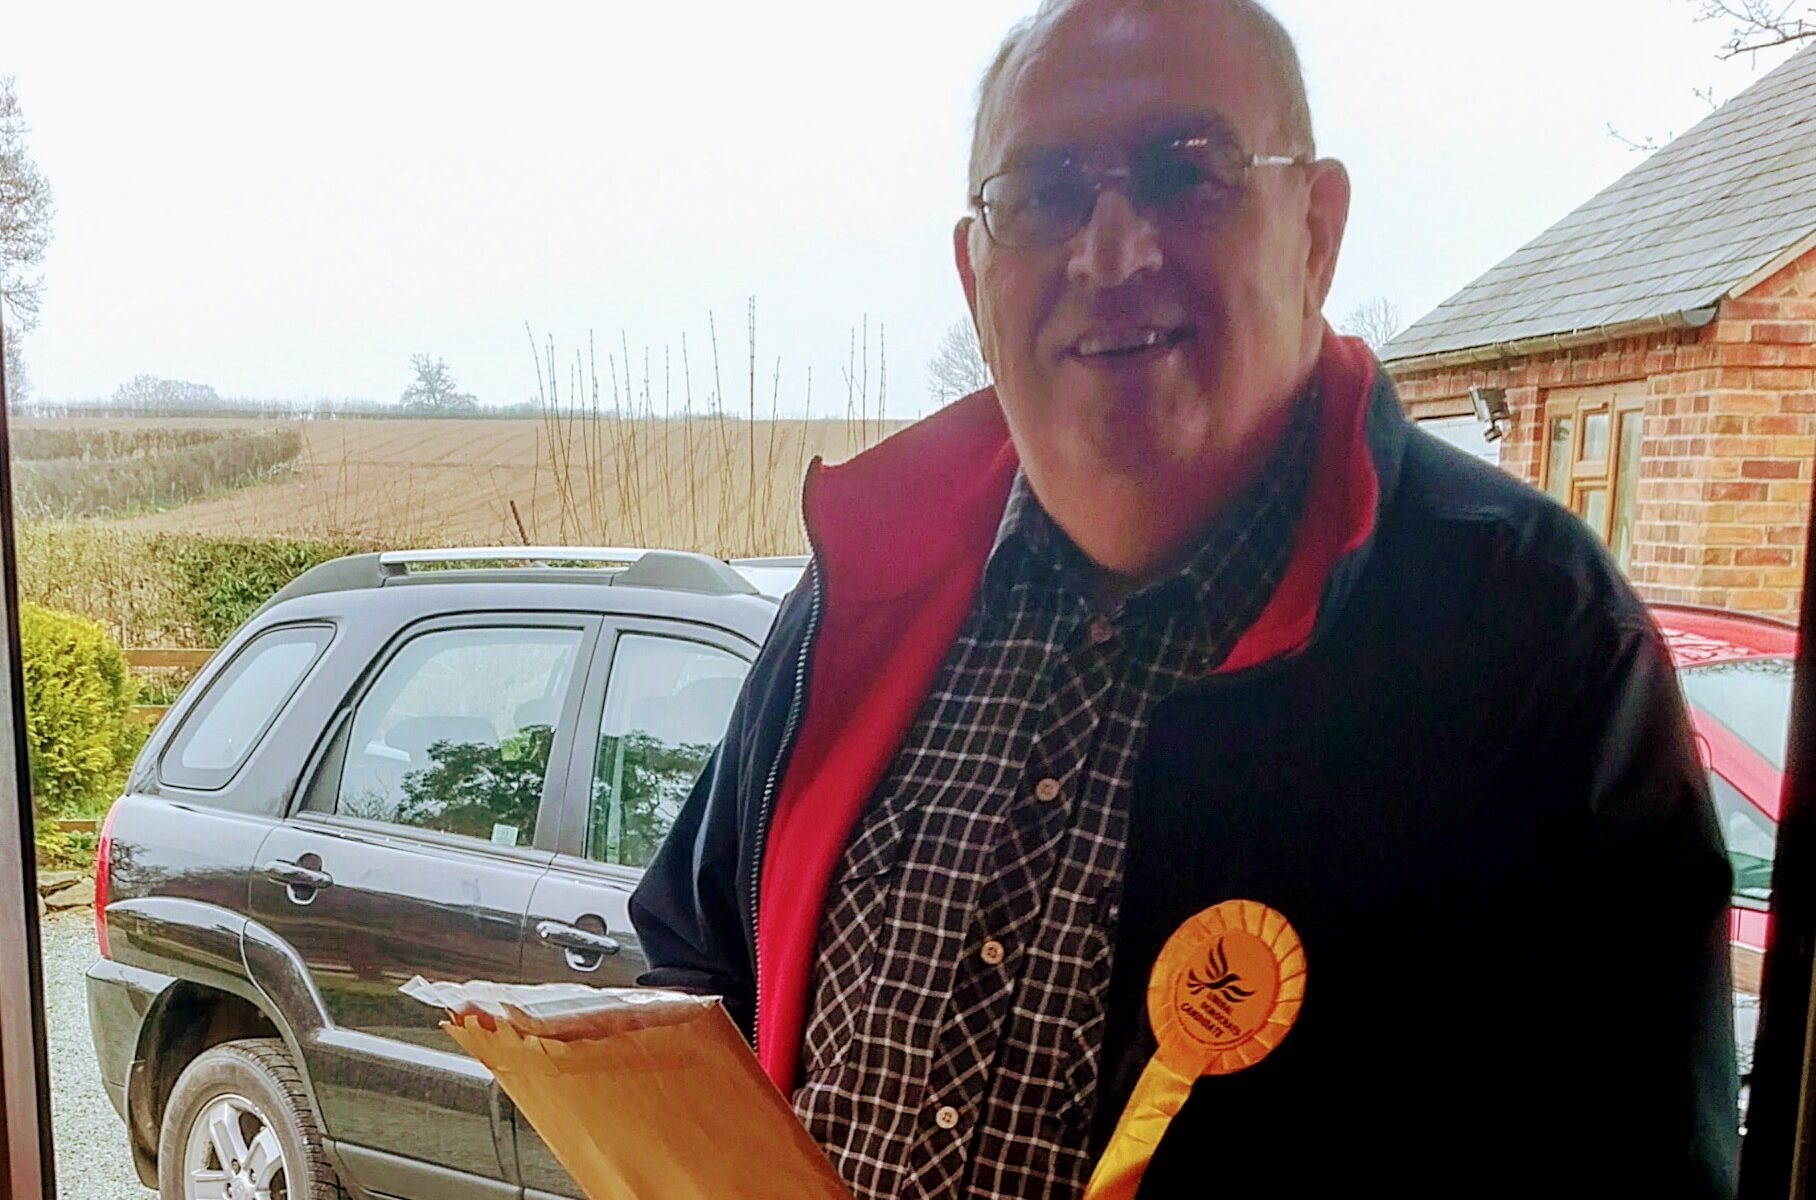 Liberal Democrat canvassing in North Shropshire